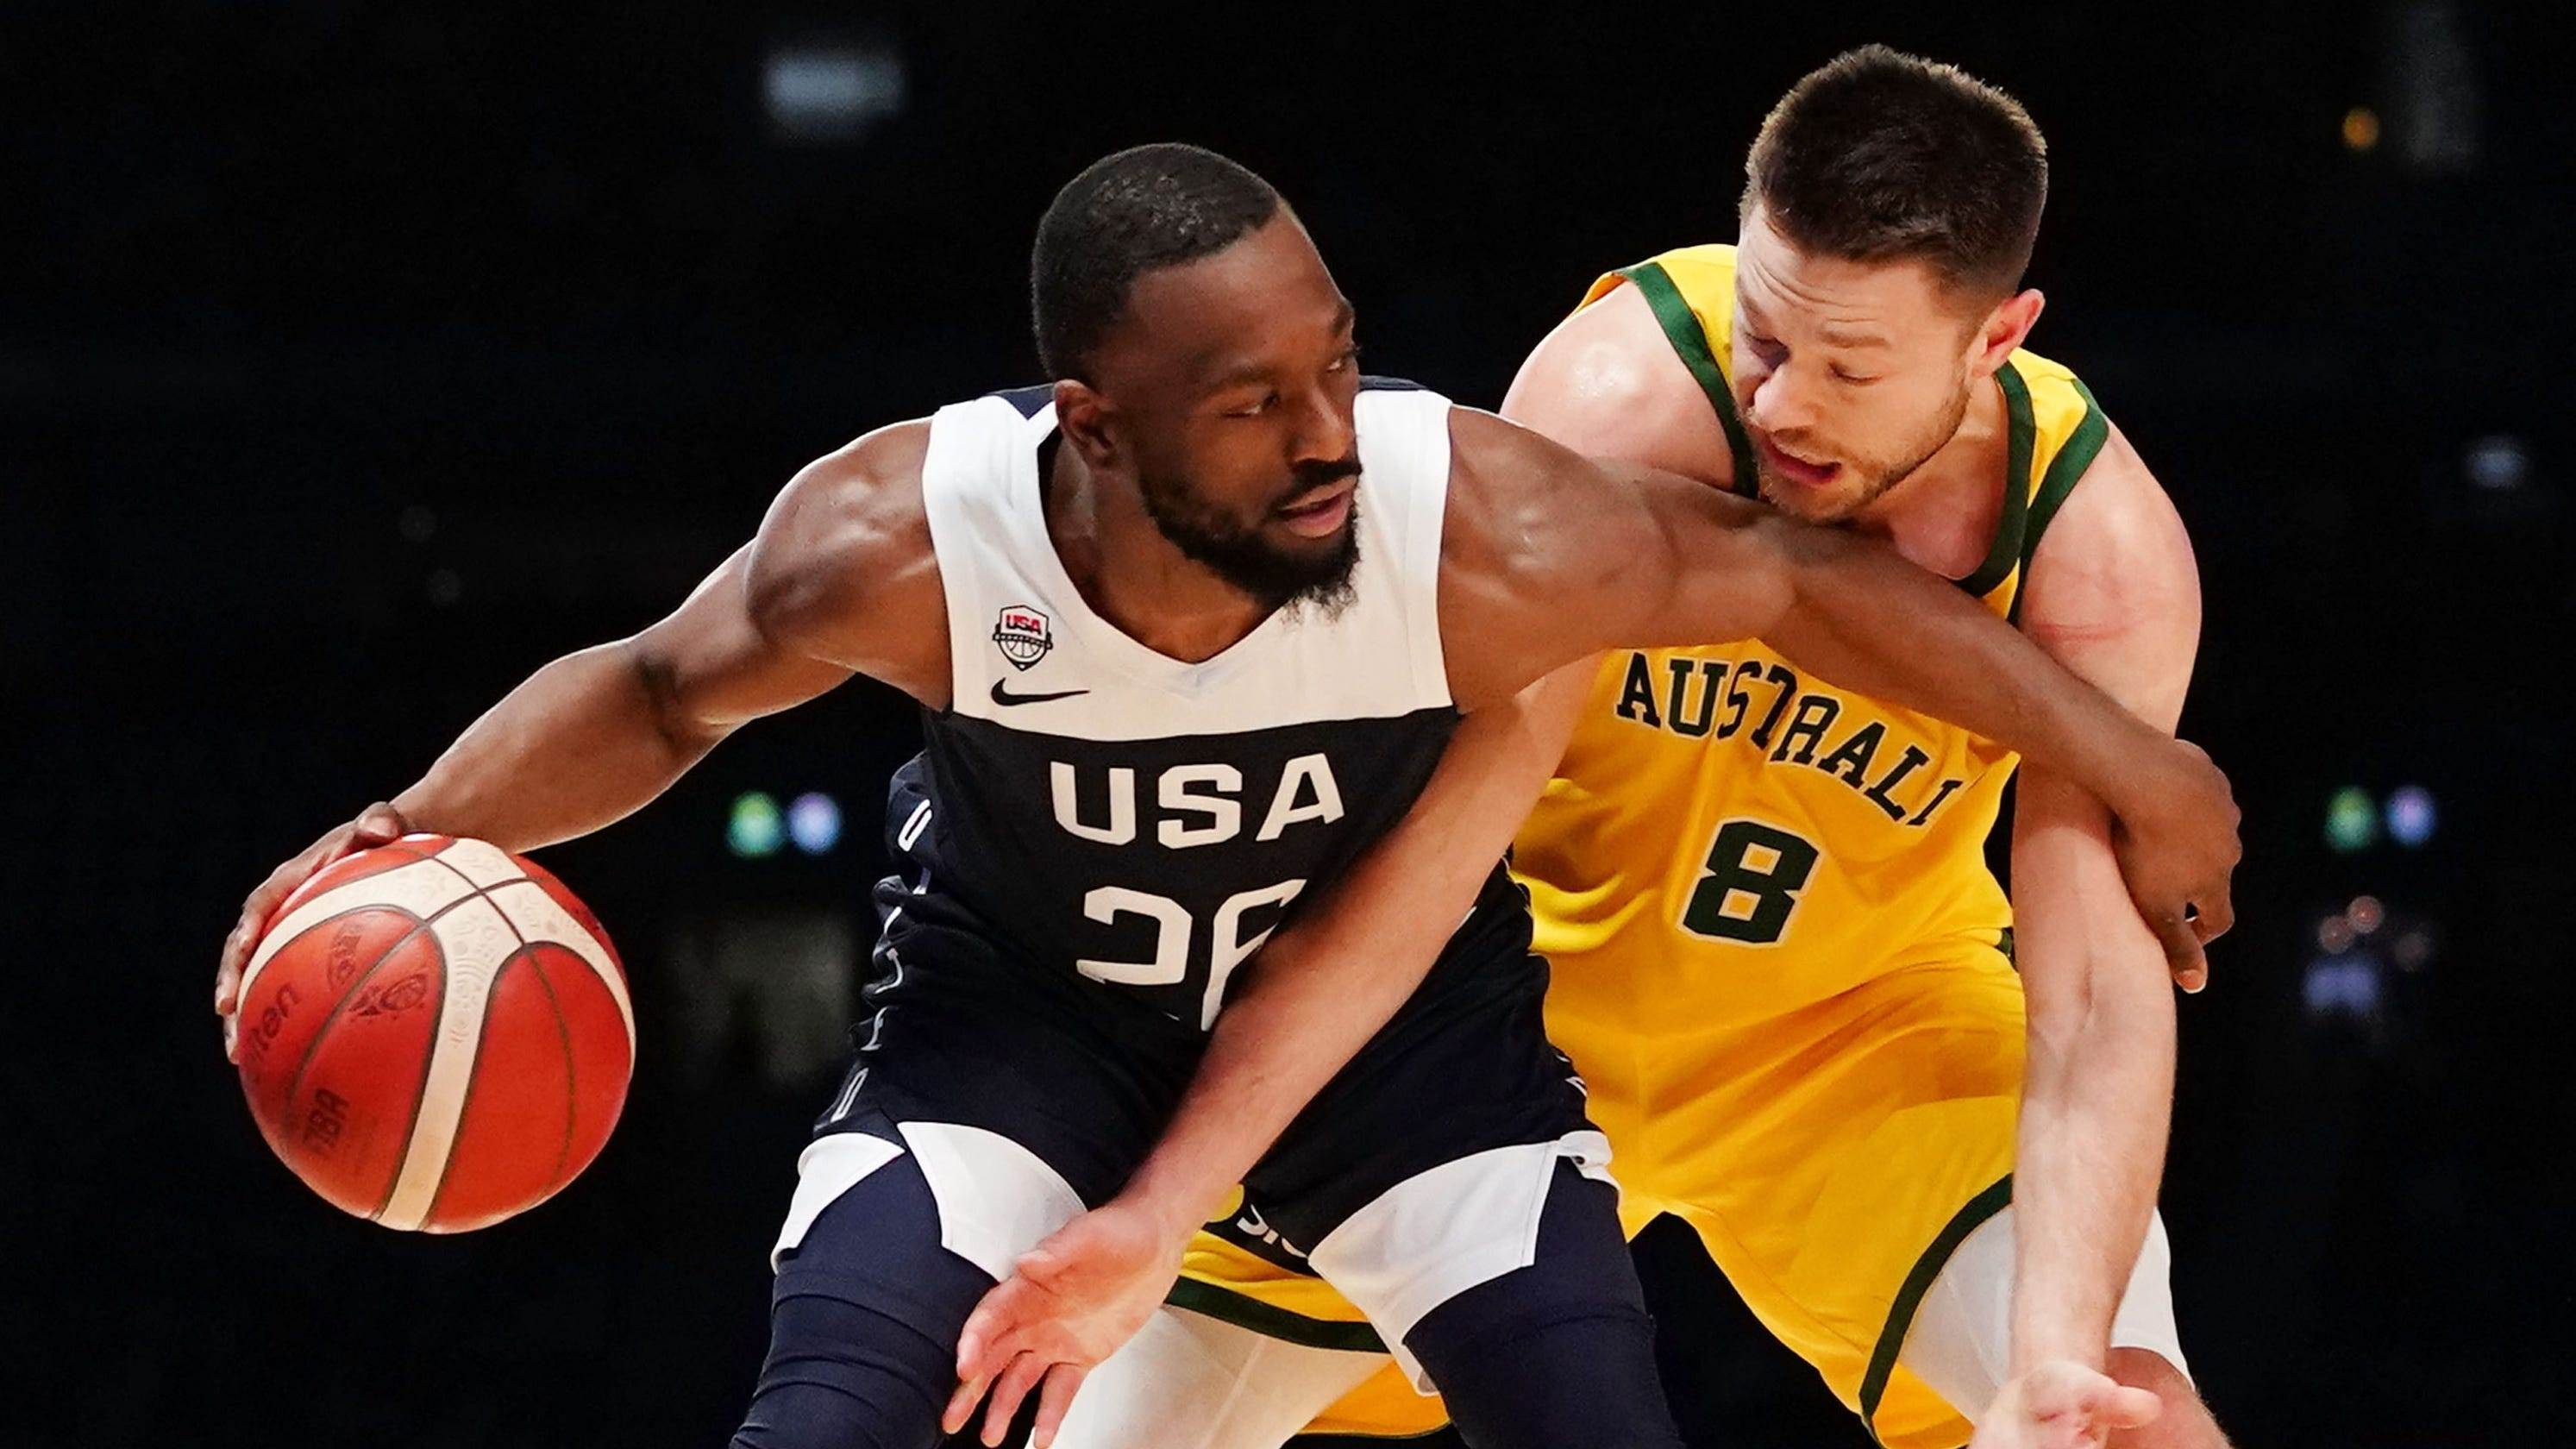 After loss to Australia, USA basketball team vulnerable at World Cup